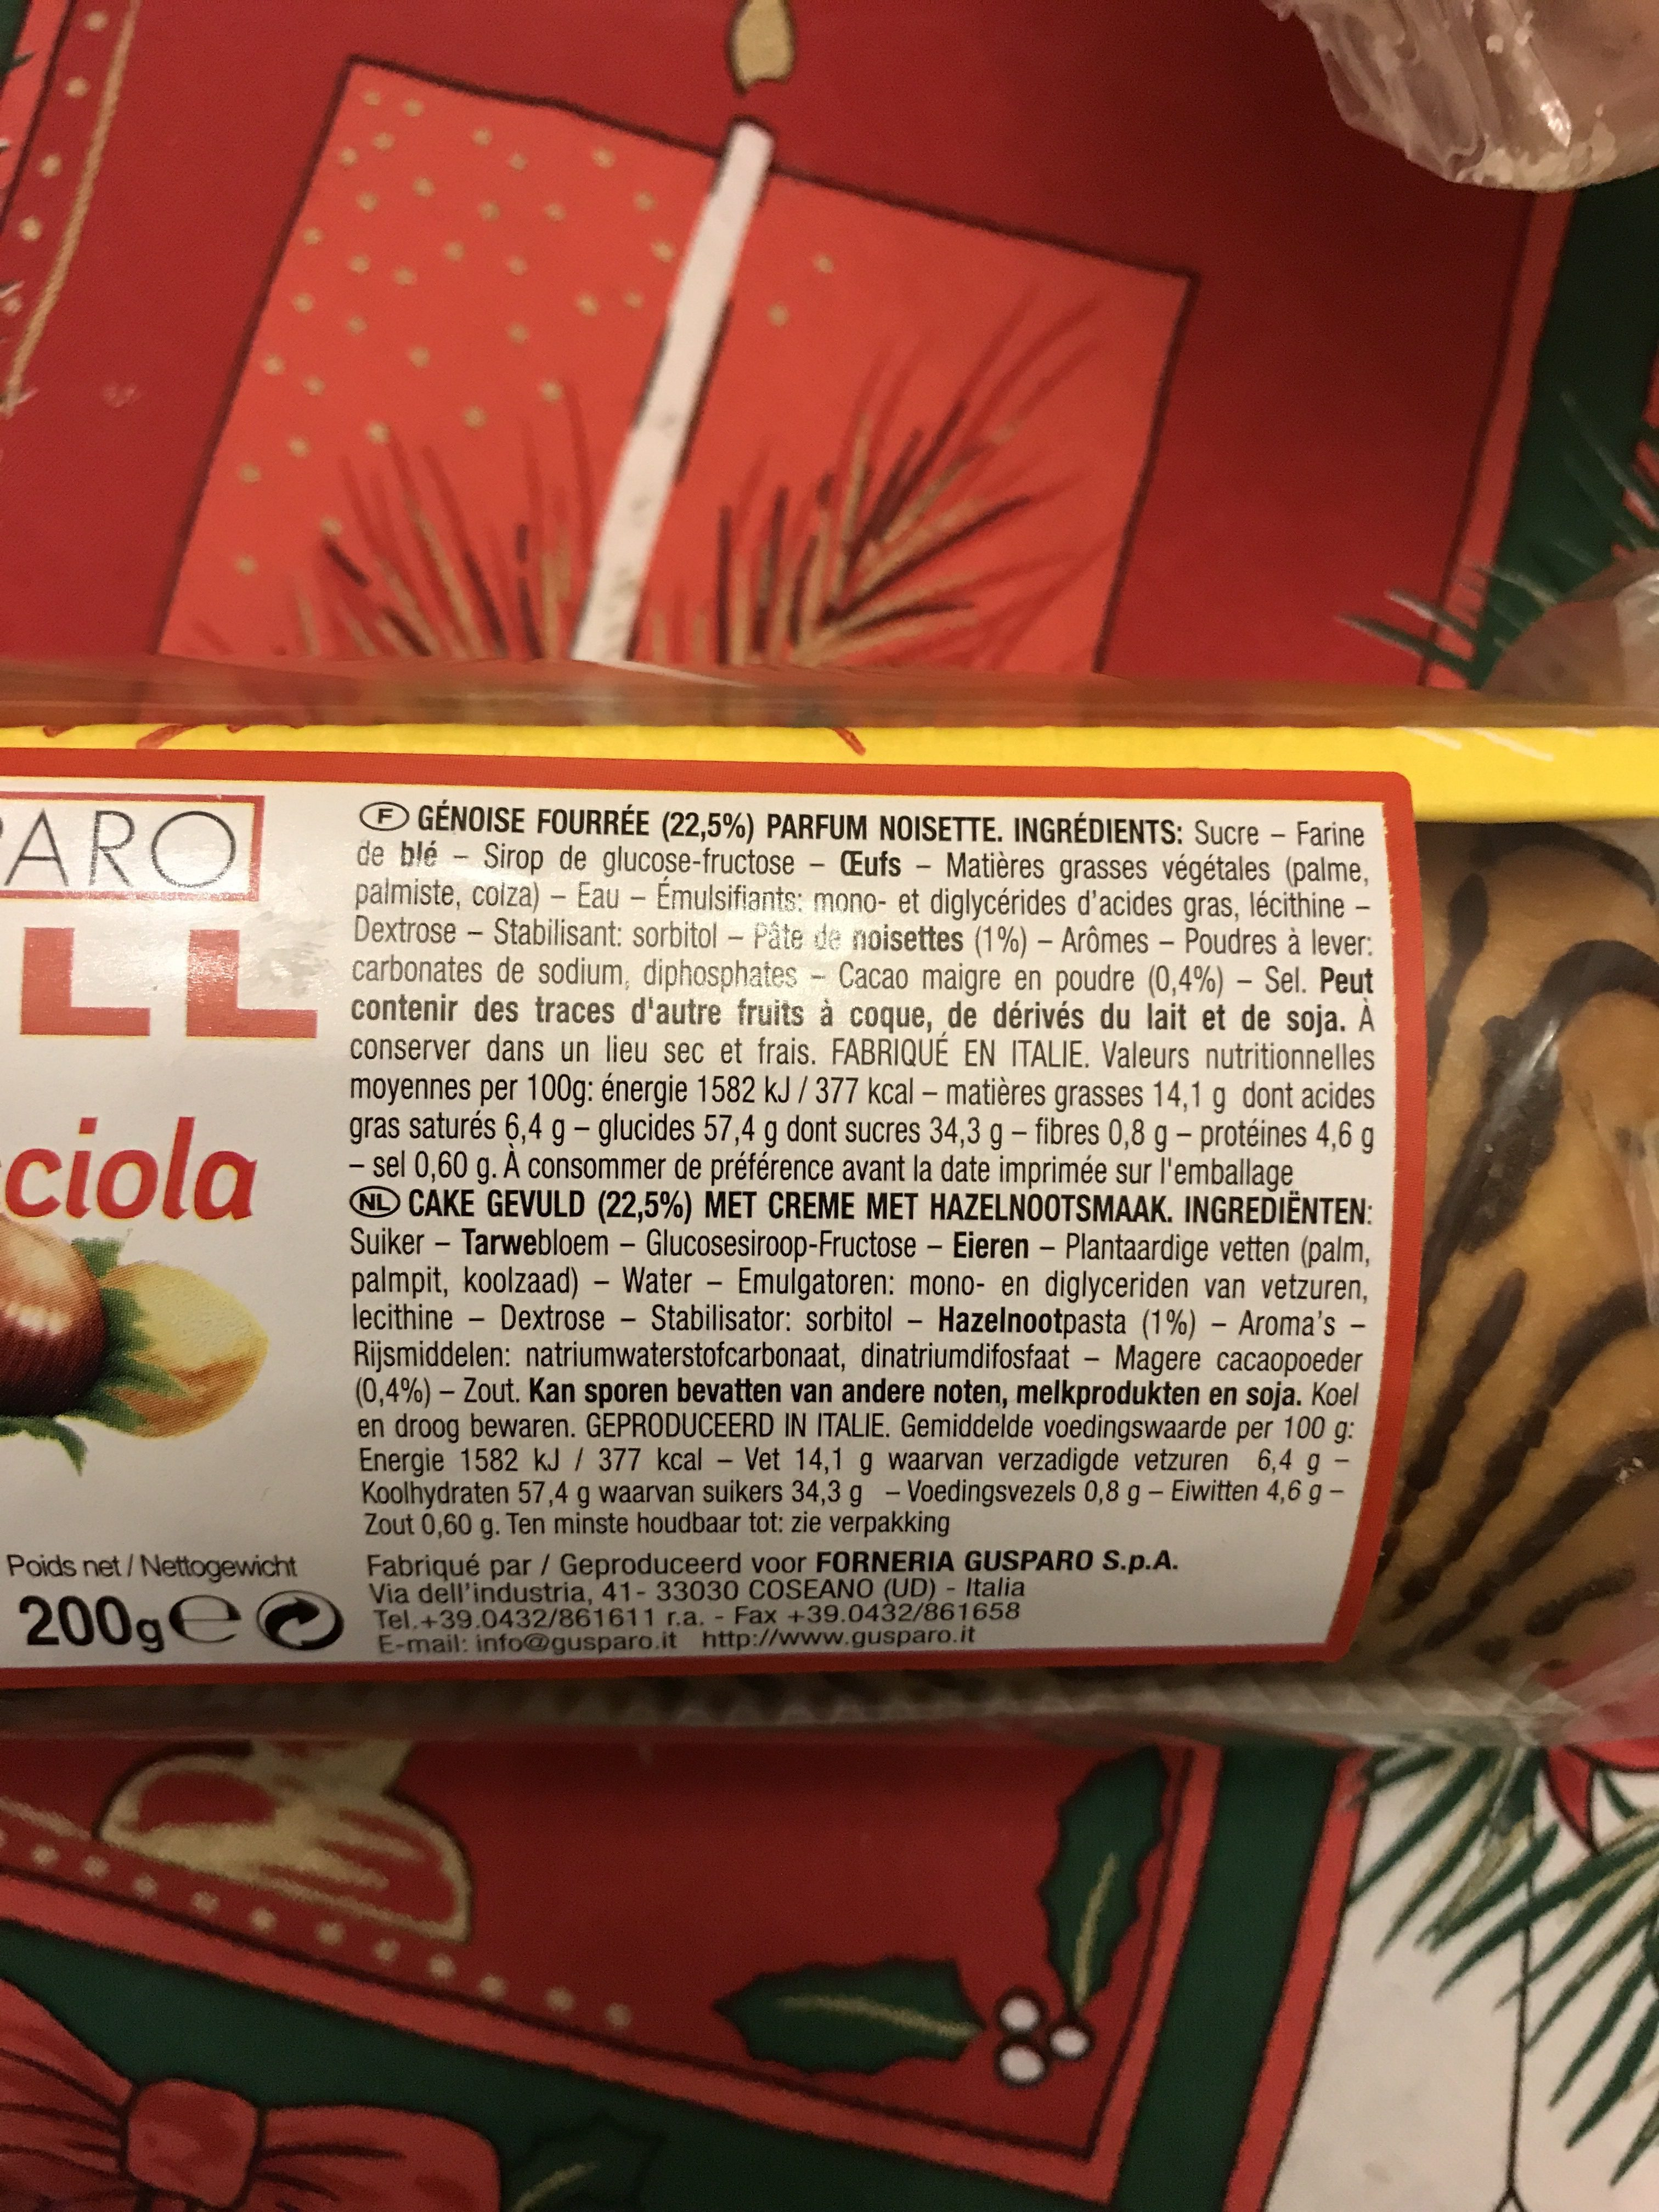 Gusparo Roll Nocciola 200G - Ingredients